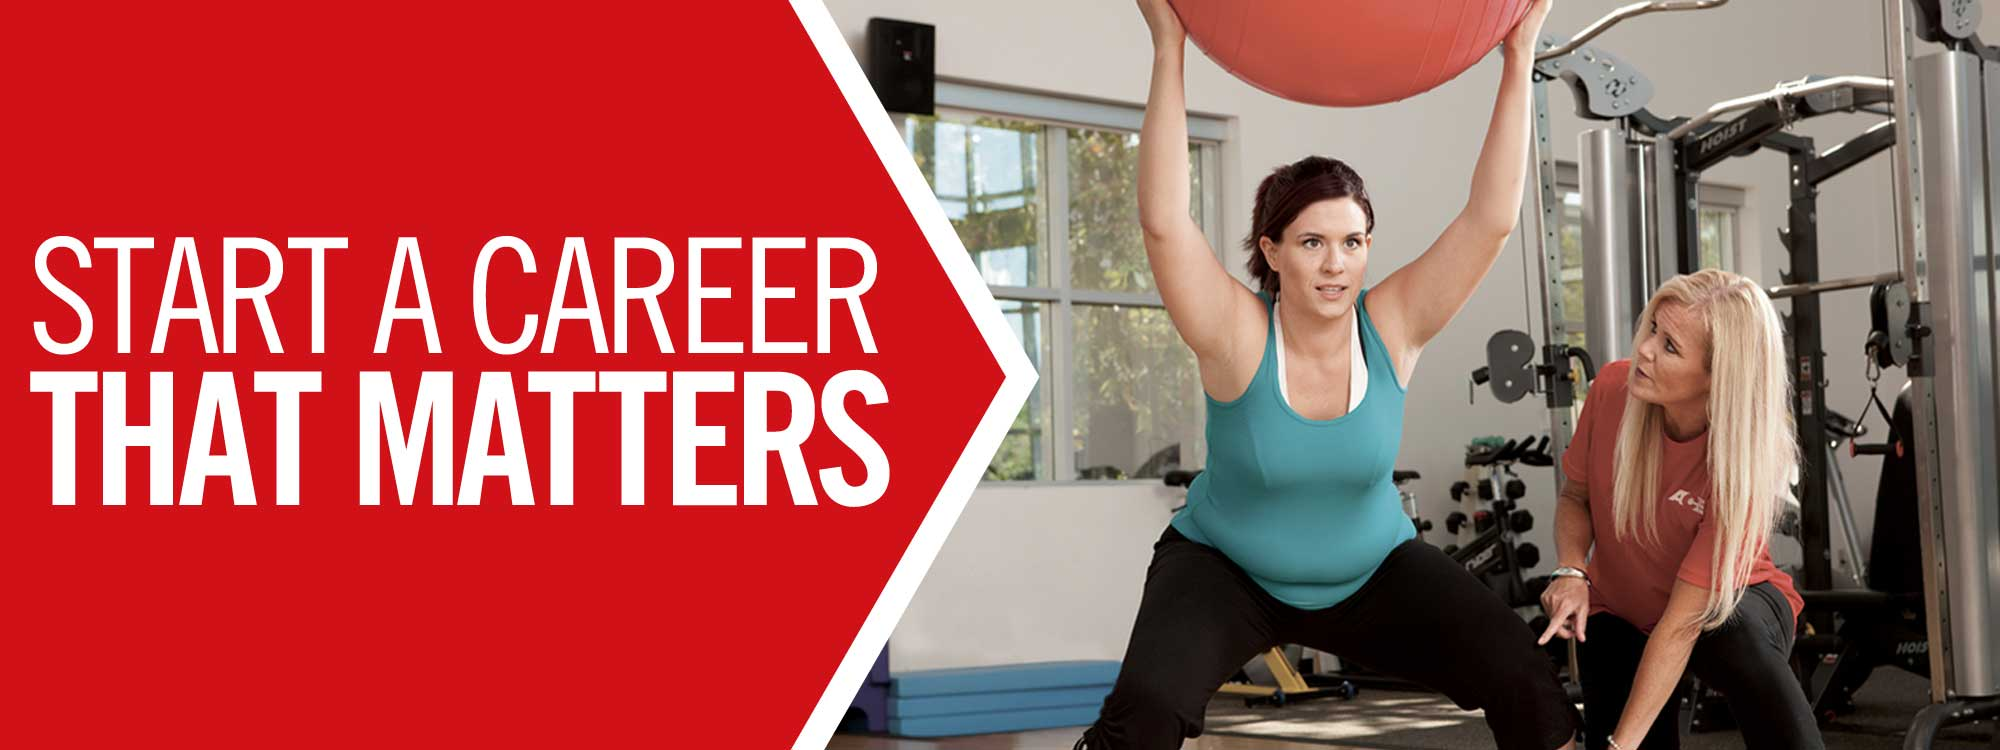 ACE Fitness Certifications - Start a Career That Matters